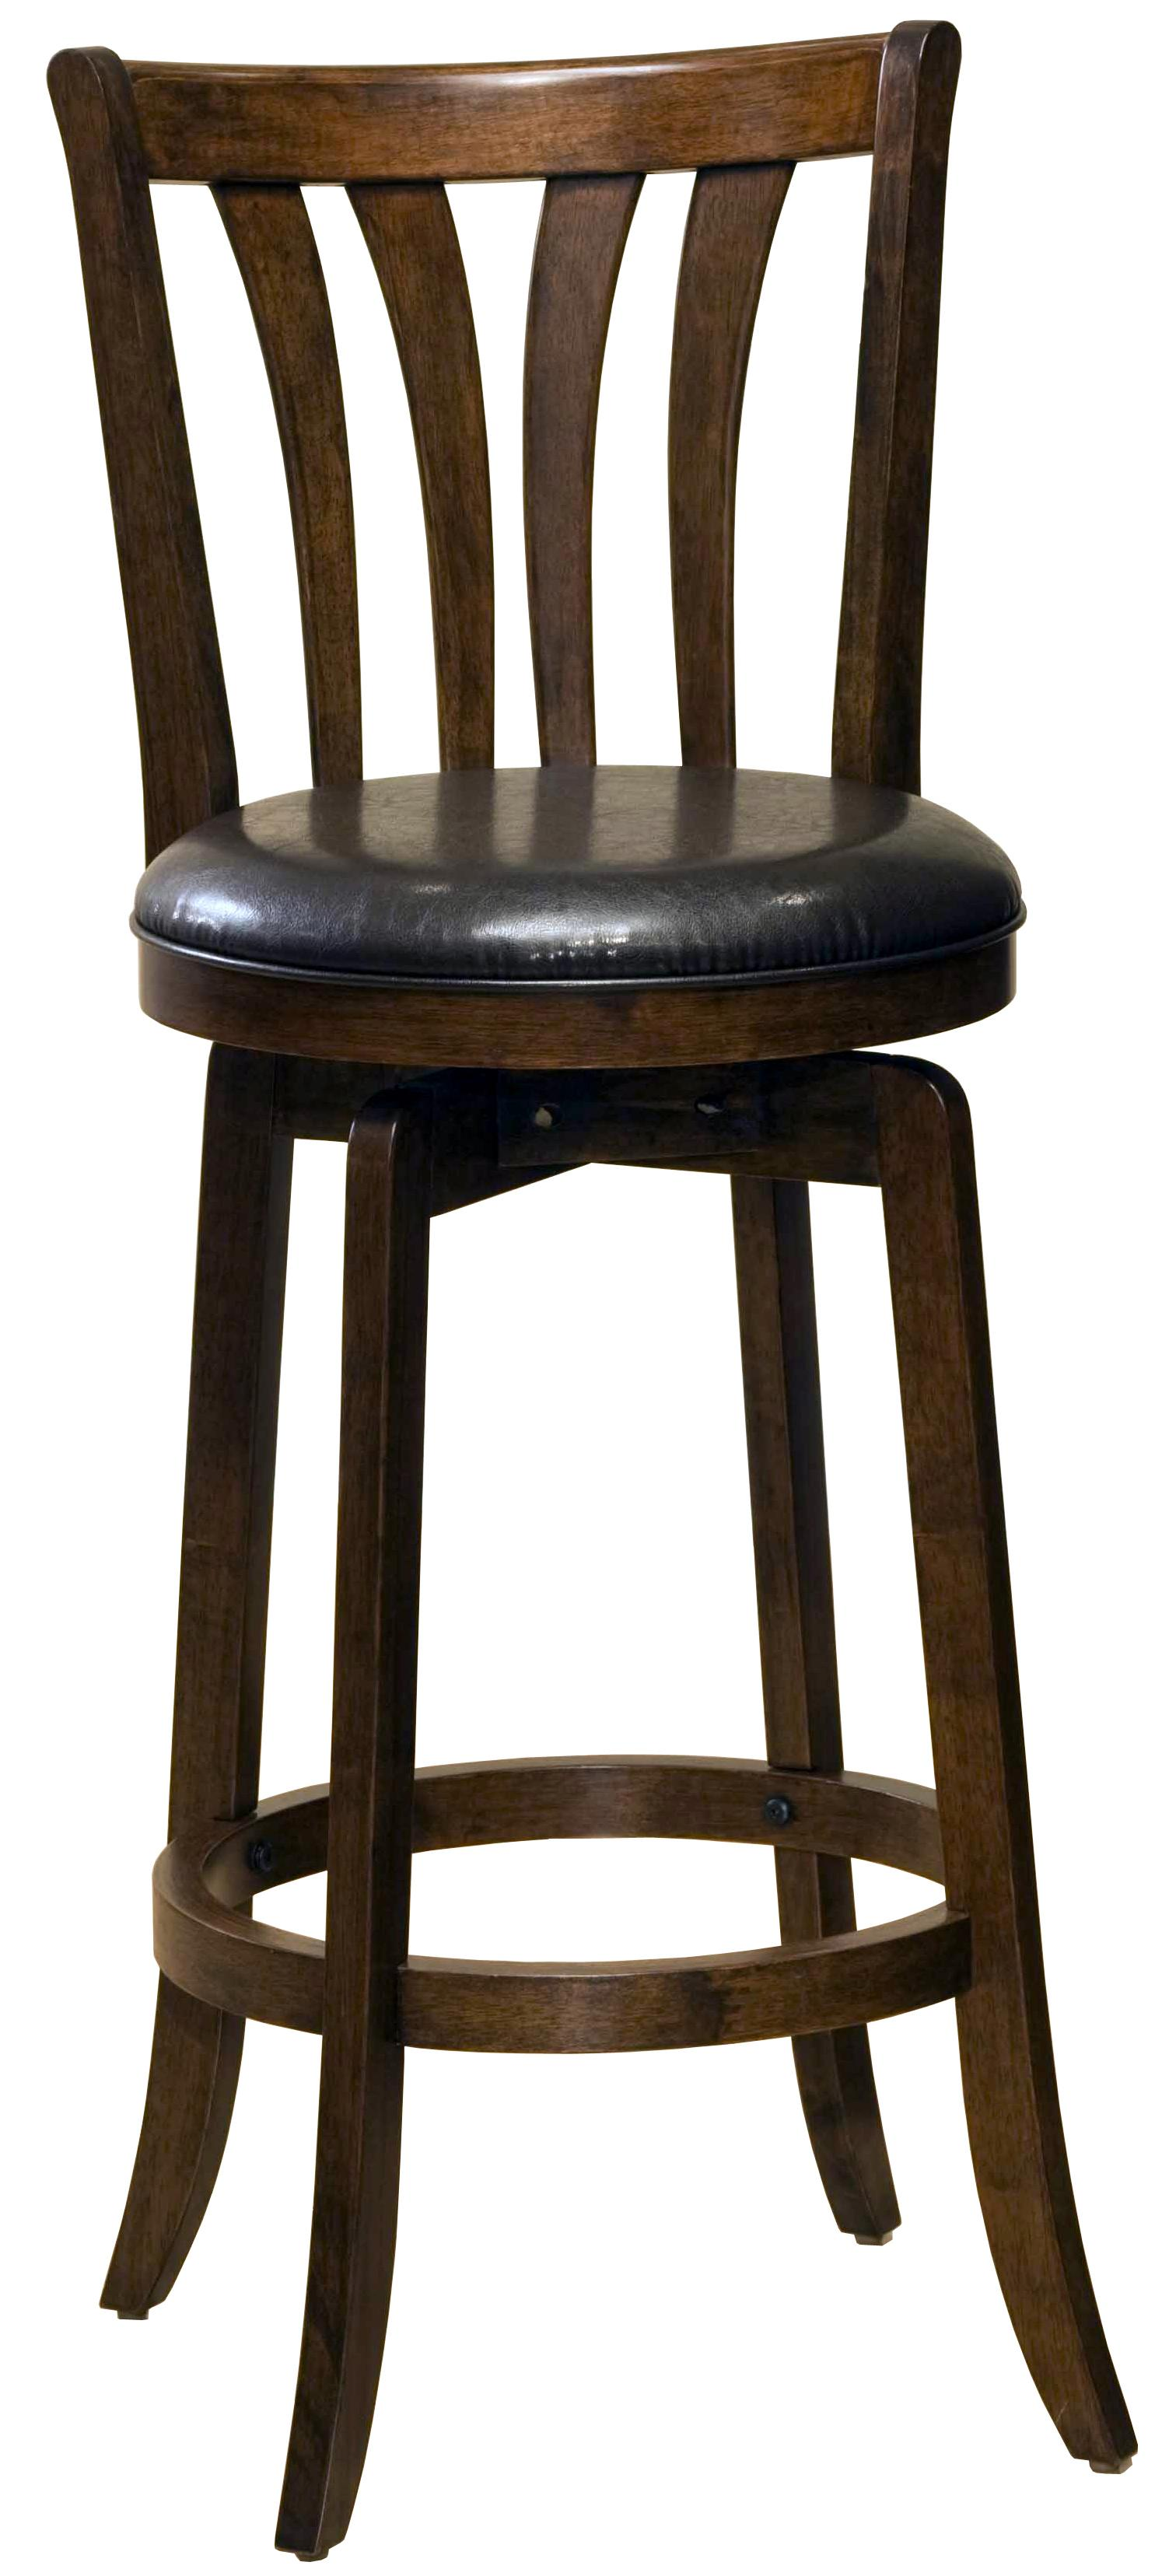 26quot Counter Height Savana Swivel Bar Stool : products2Fhillsdale2Fcolor2Fwood20stools4495 826 b from wolffurniture.com size 1512 x 3312 jpeg 280kB